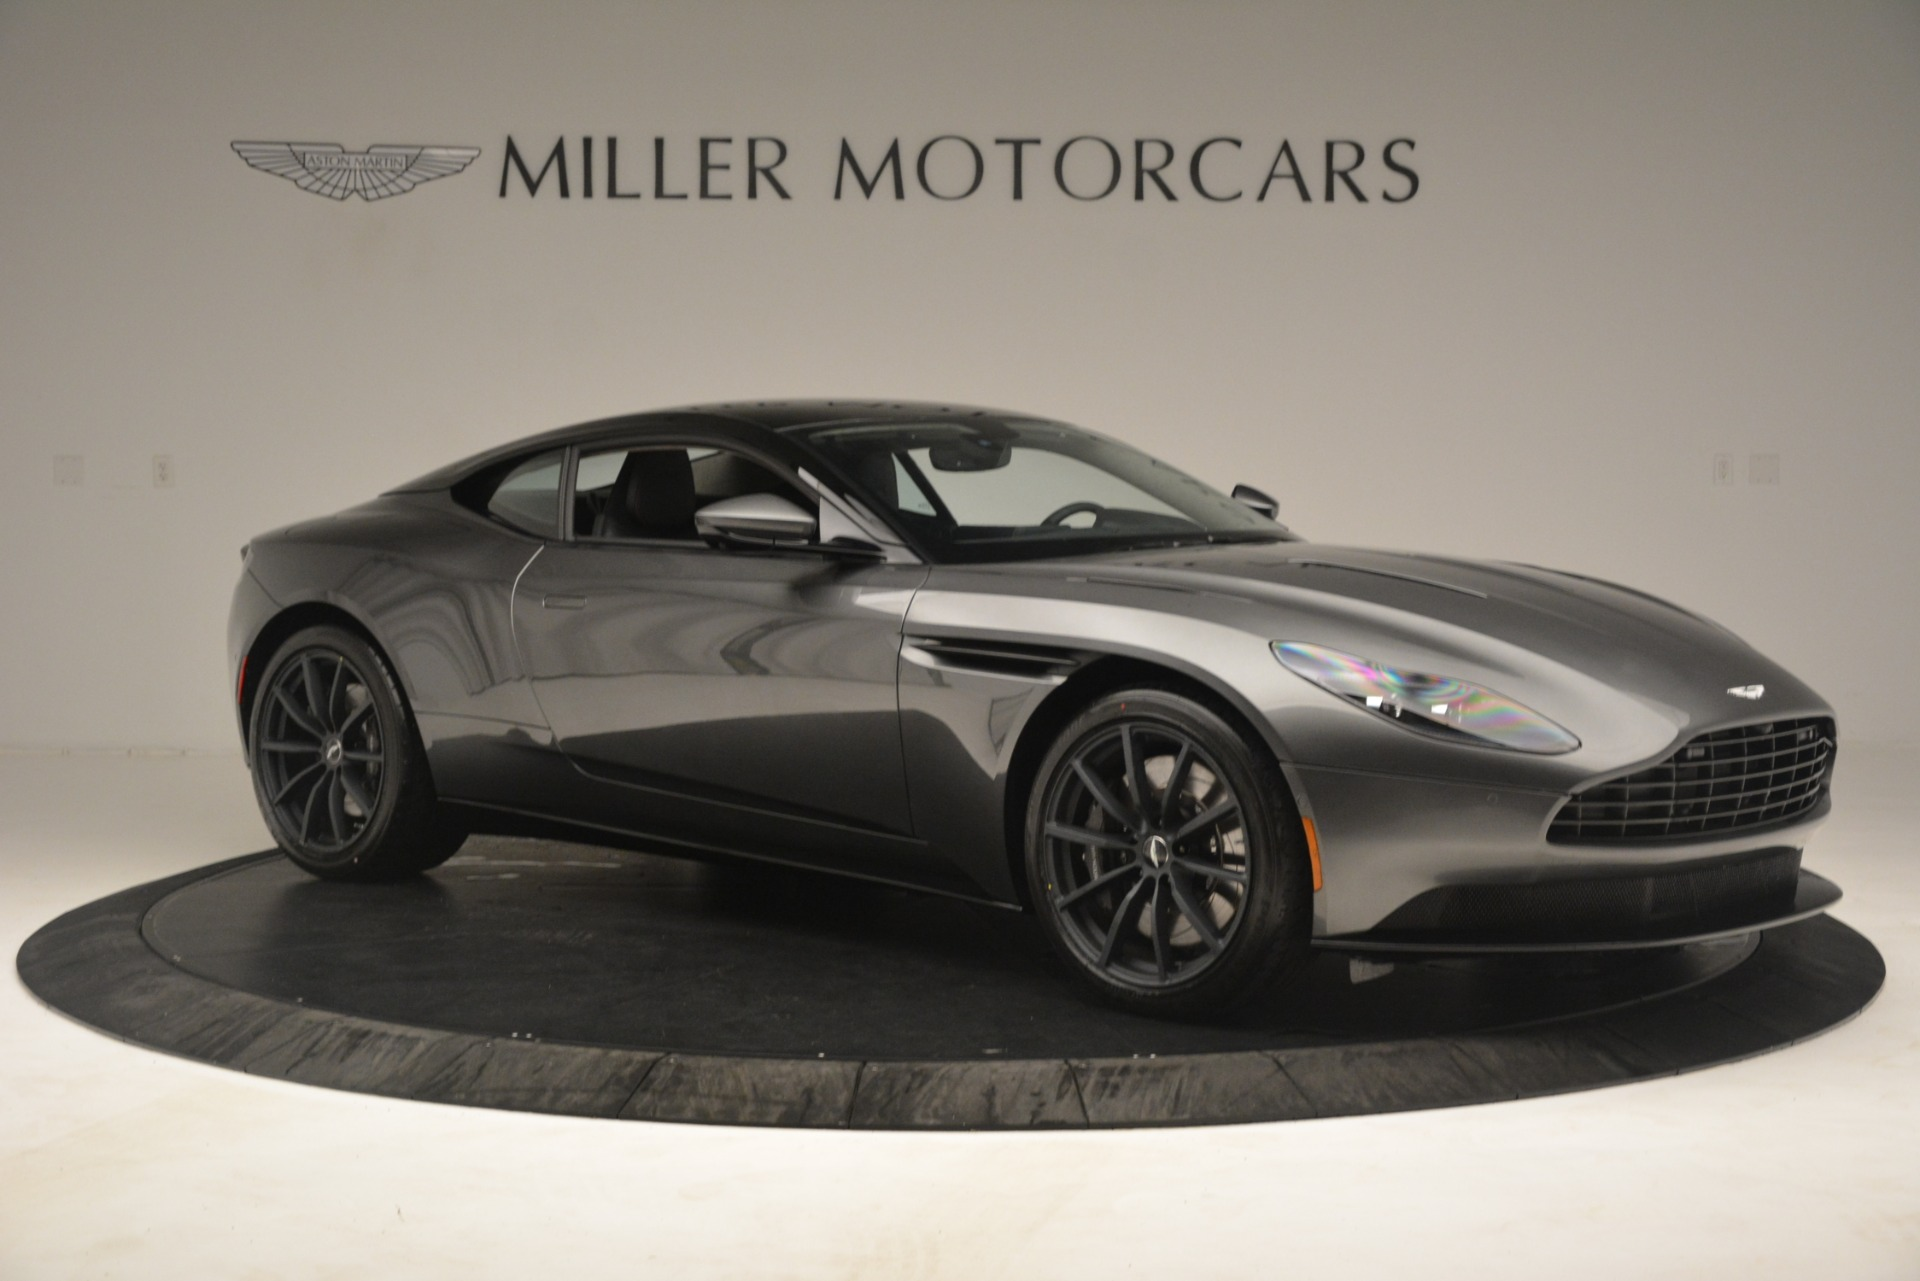 New 2019 Aston Martin DB11 V12 AMR Coupe For Sale In Greenwich, CT 3123_p10